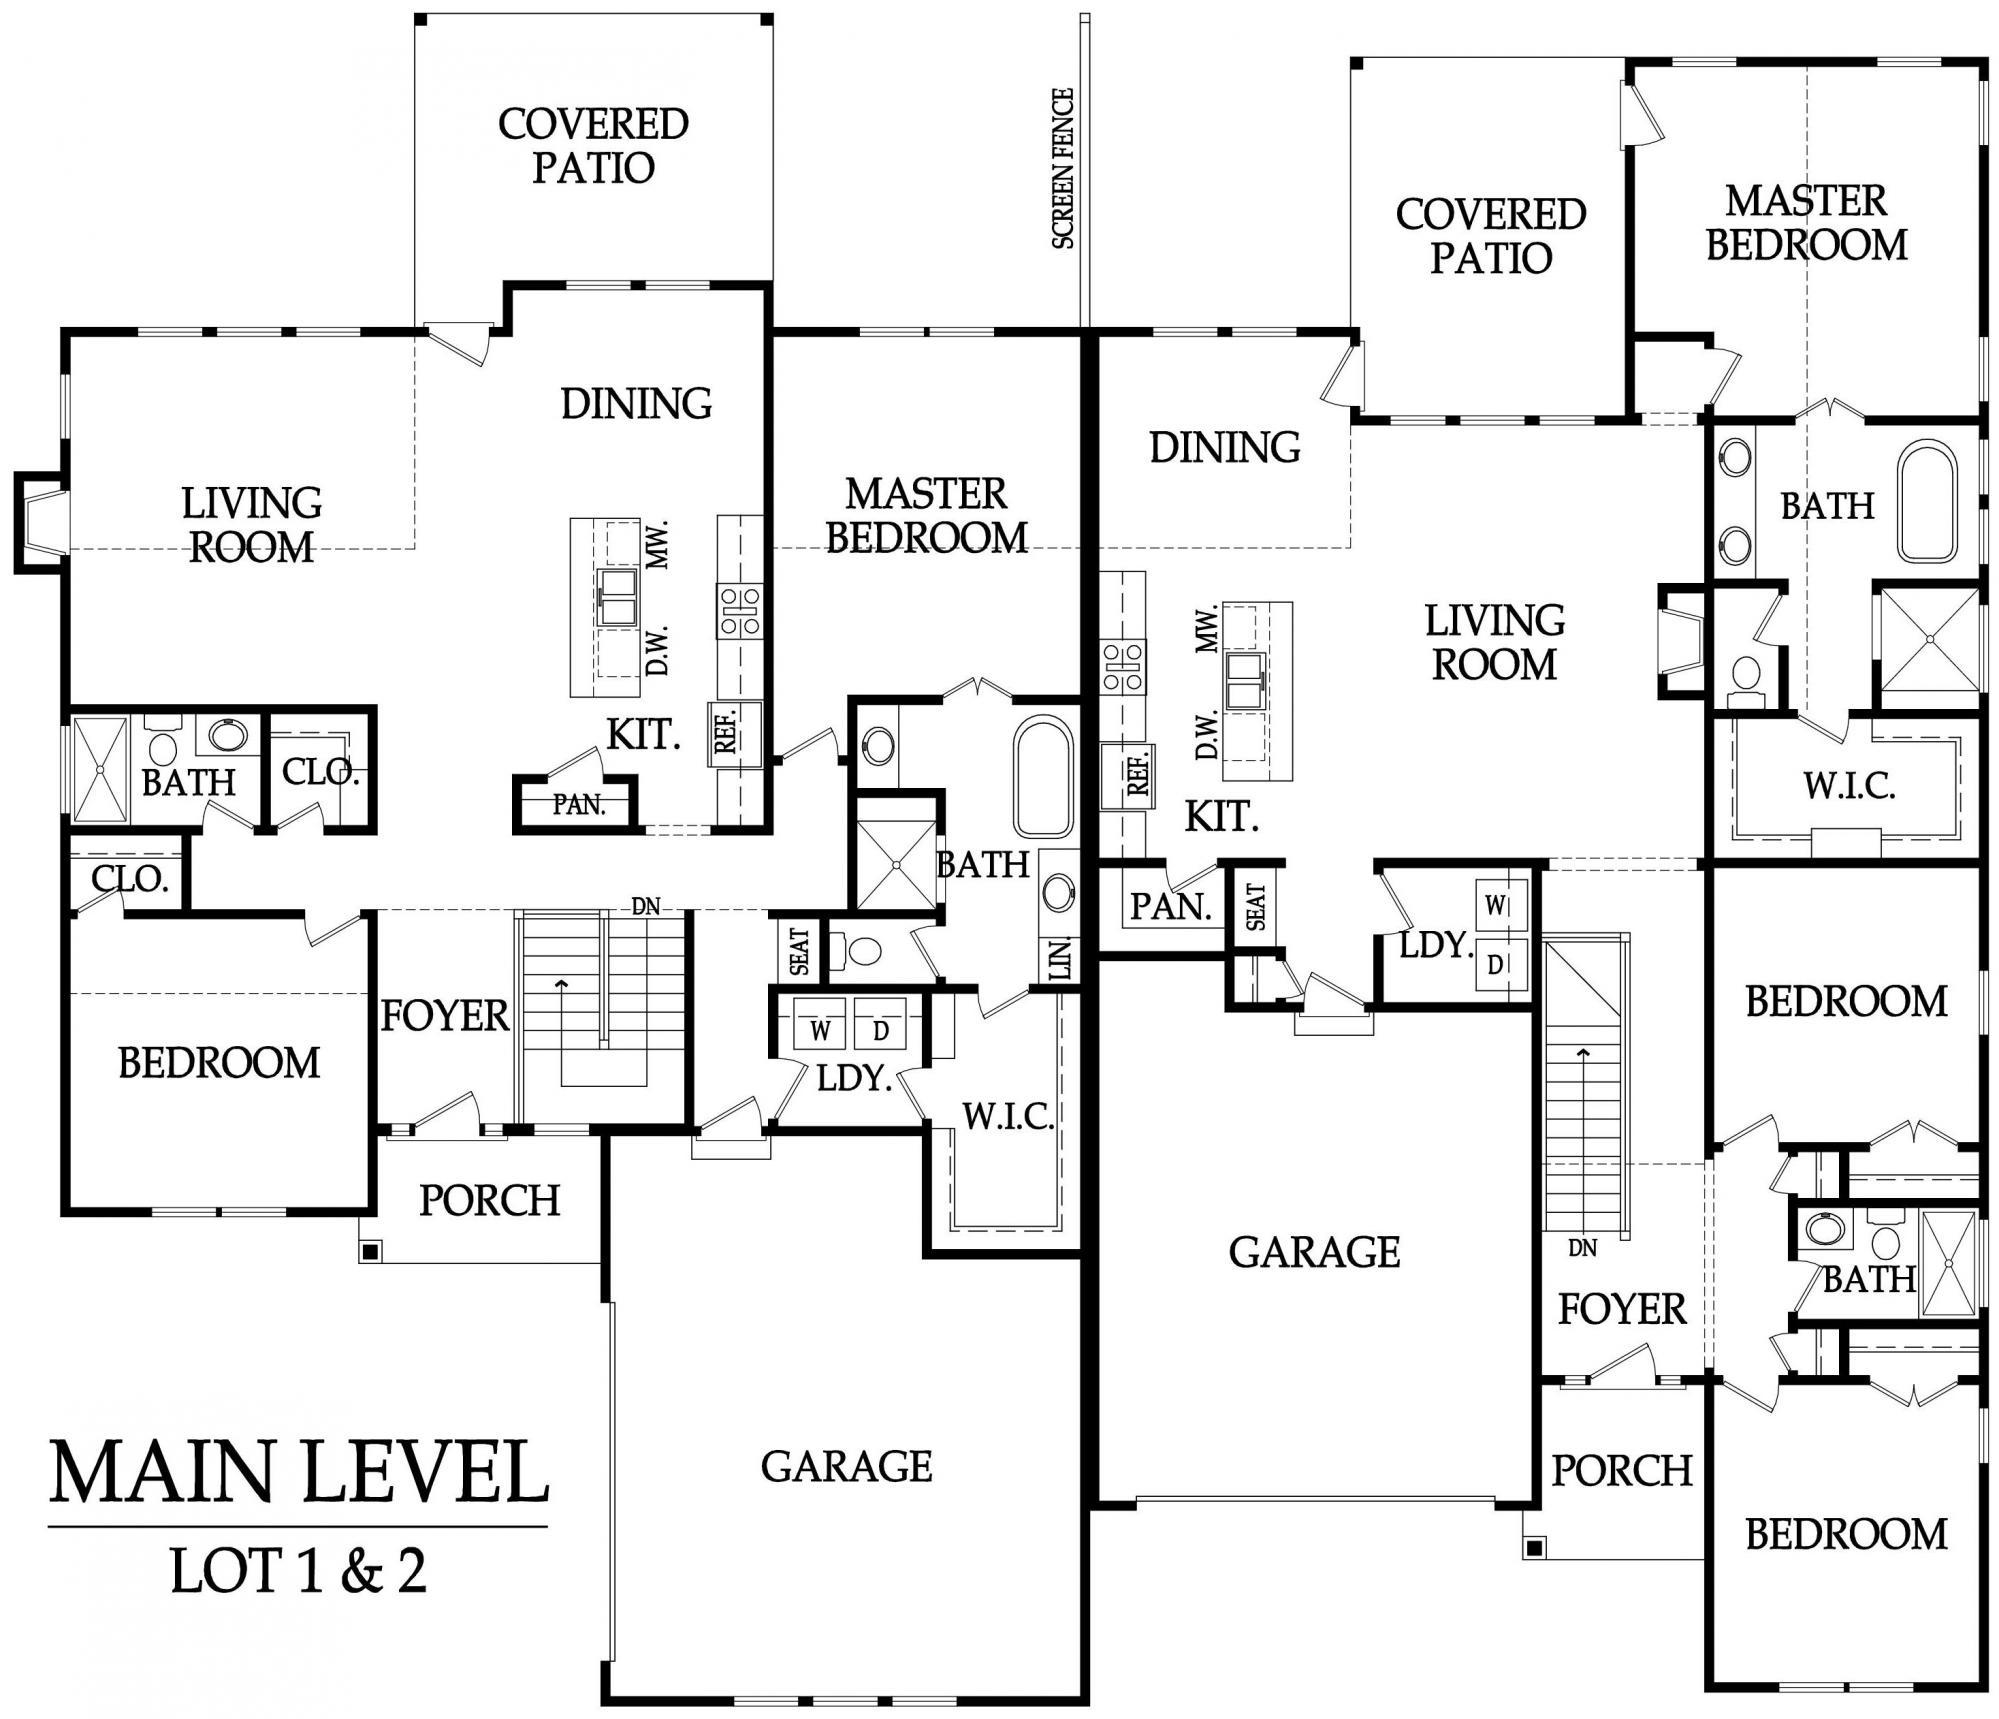 New Townhome Construction Chicago Suburbs: New Condo & Townhome Communities In Kansas City